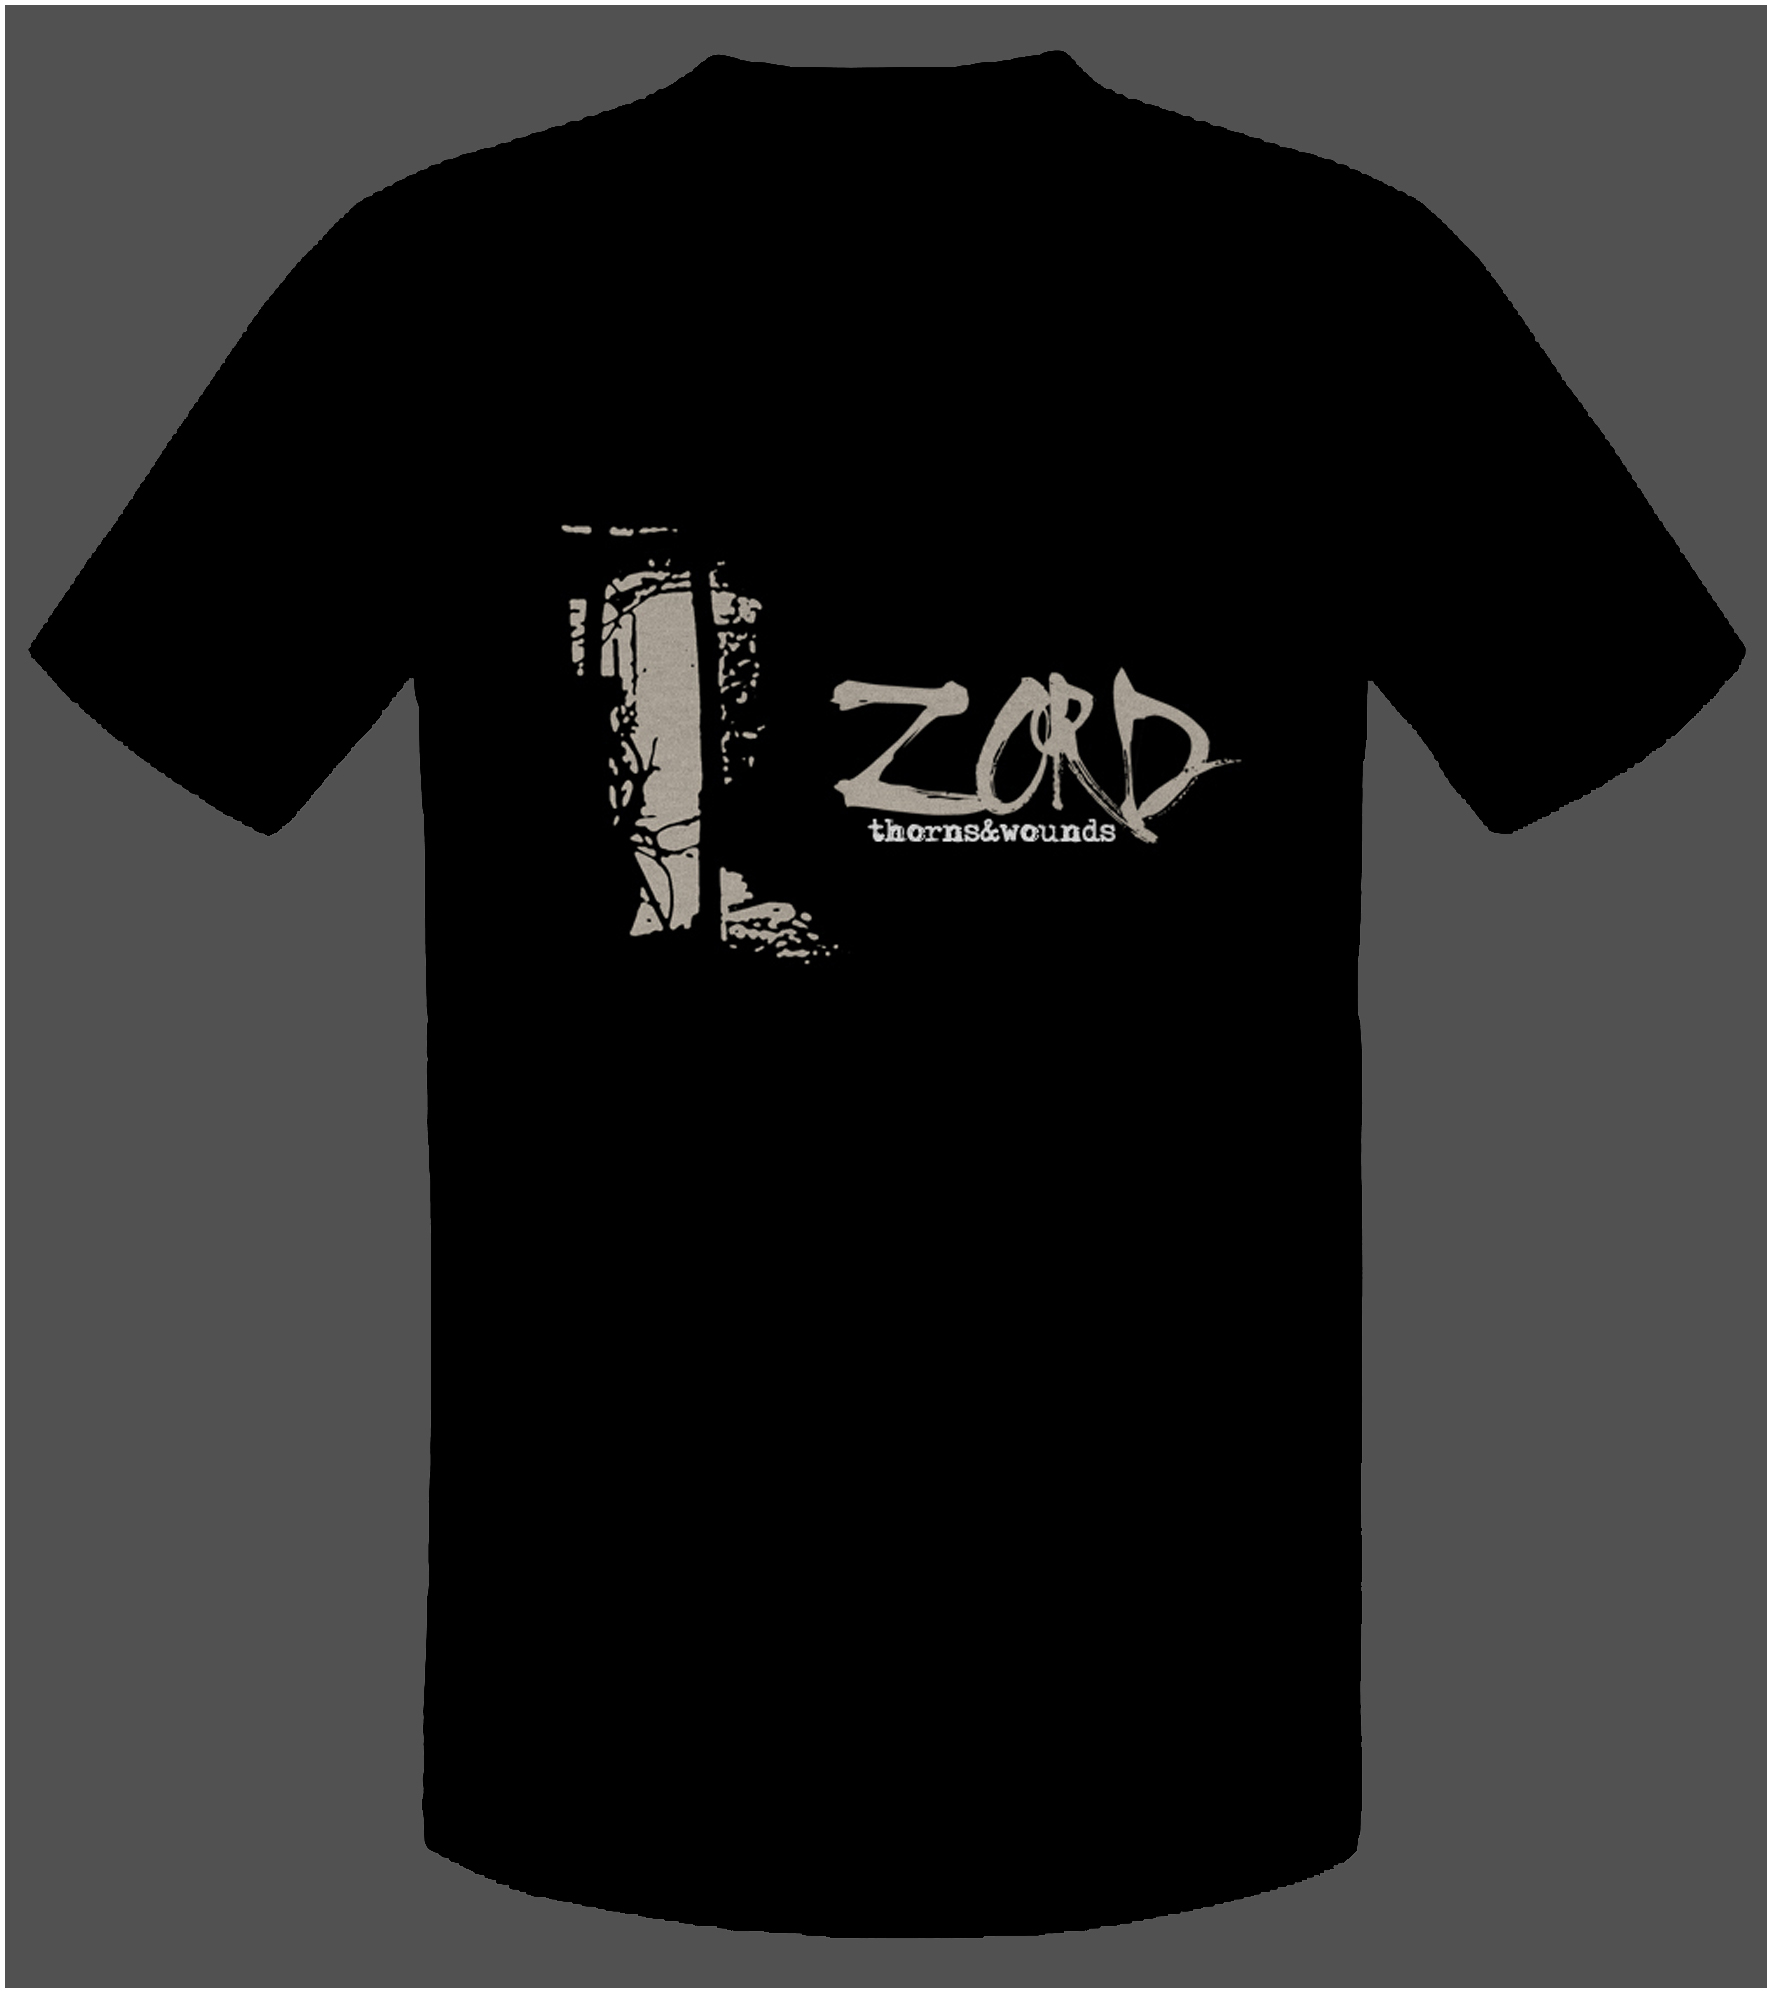 Zord - T-shirt - 2013 - front